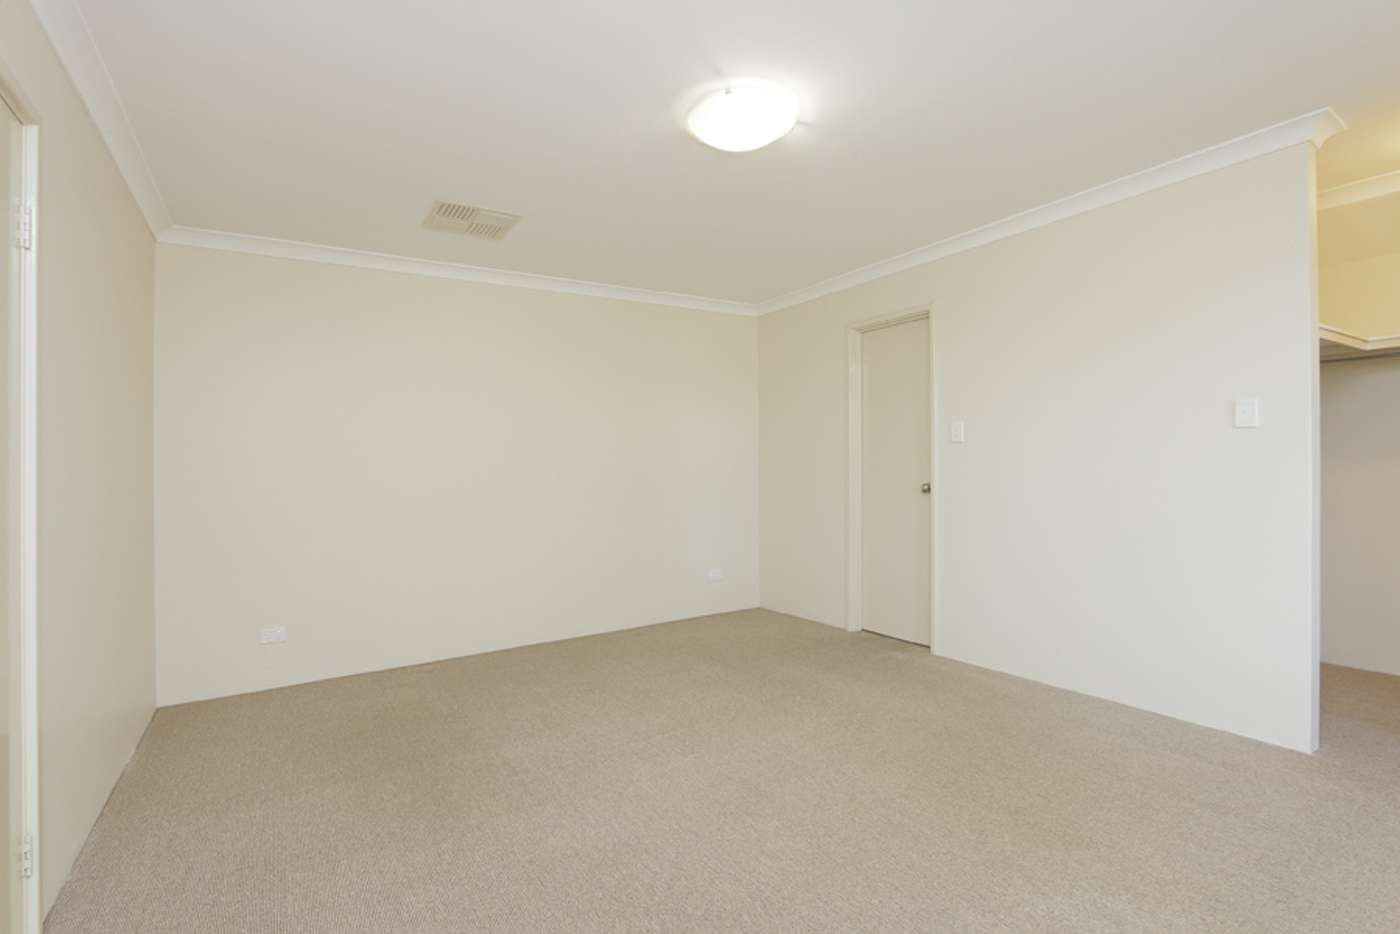 Seventh view of Homely house listing, 9 Wodonga Court, Baldivis WA 6171